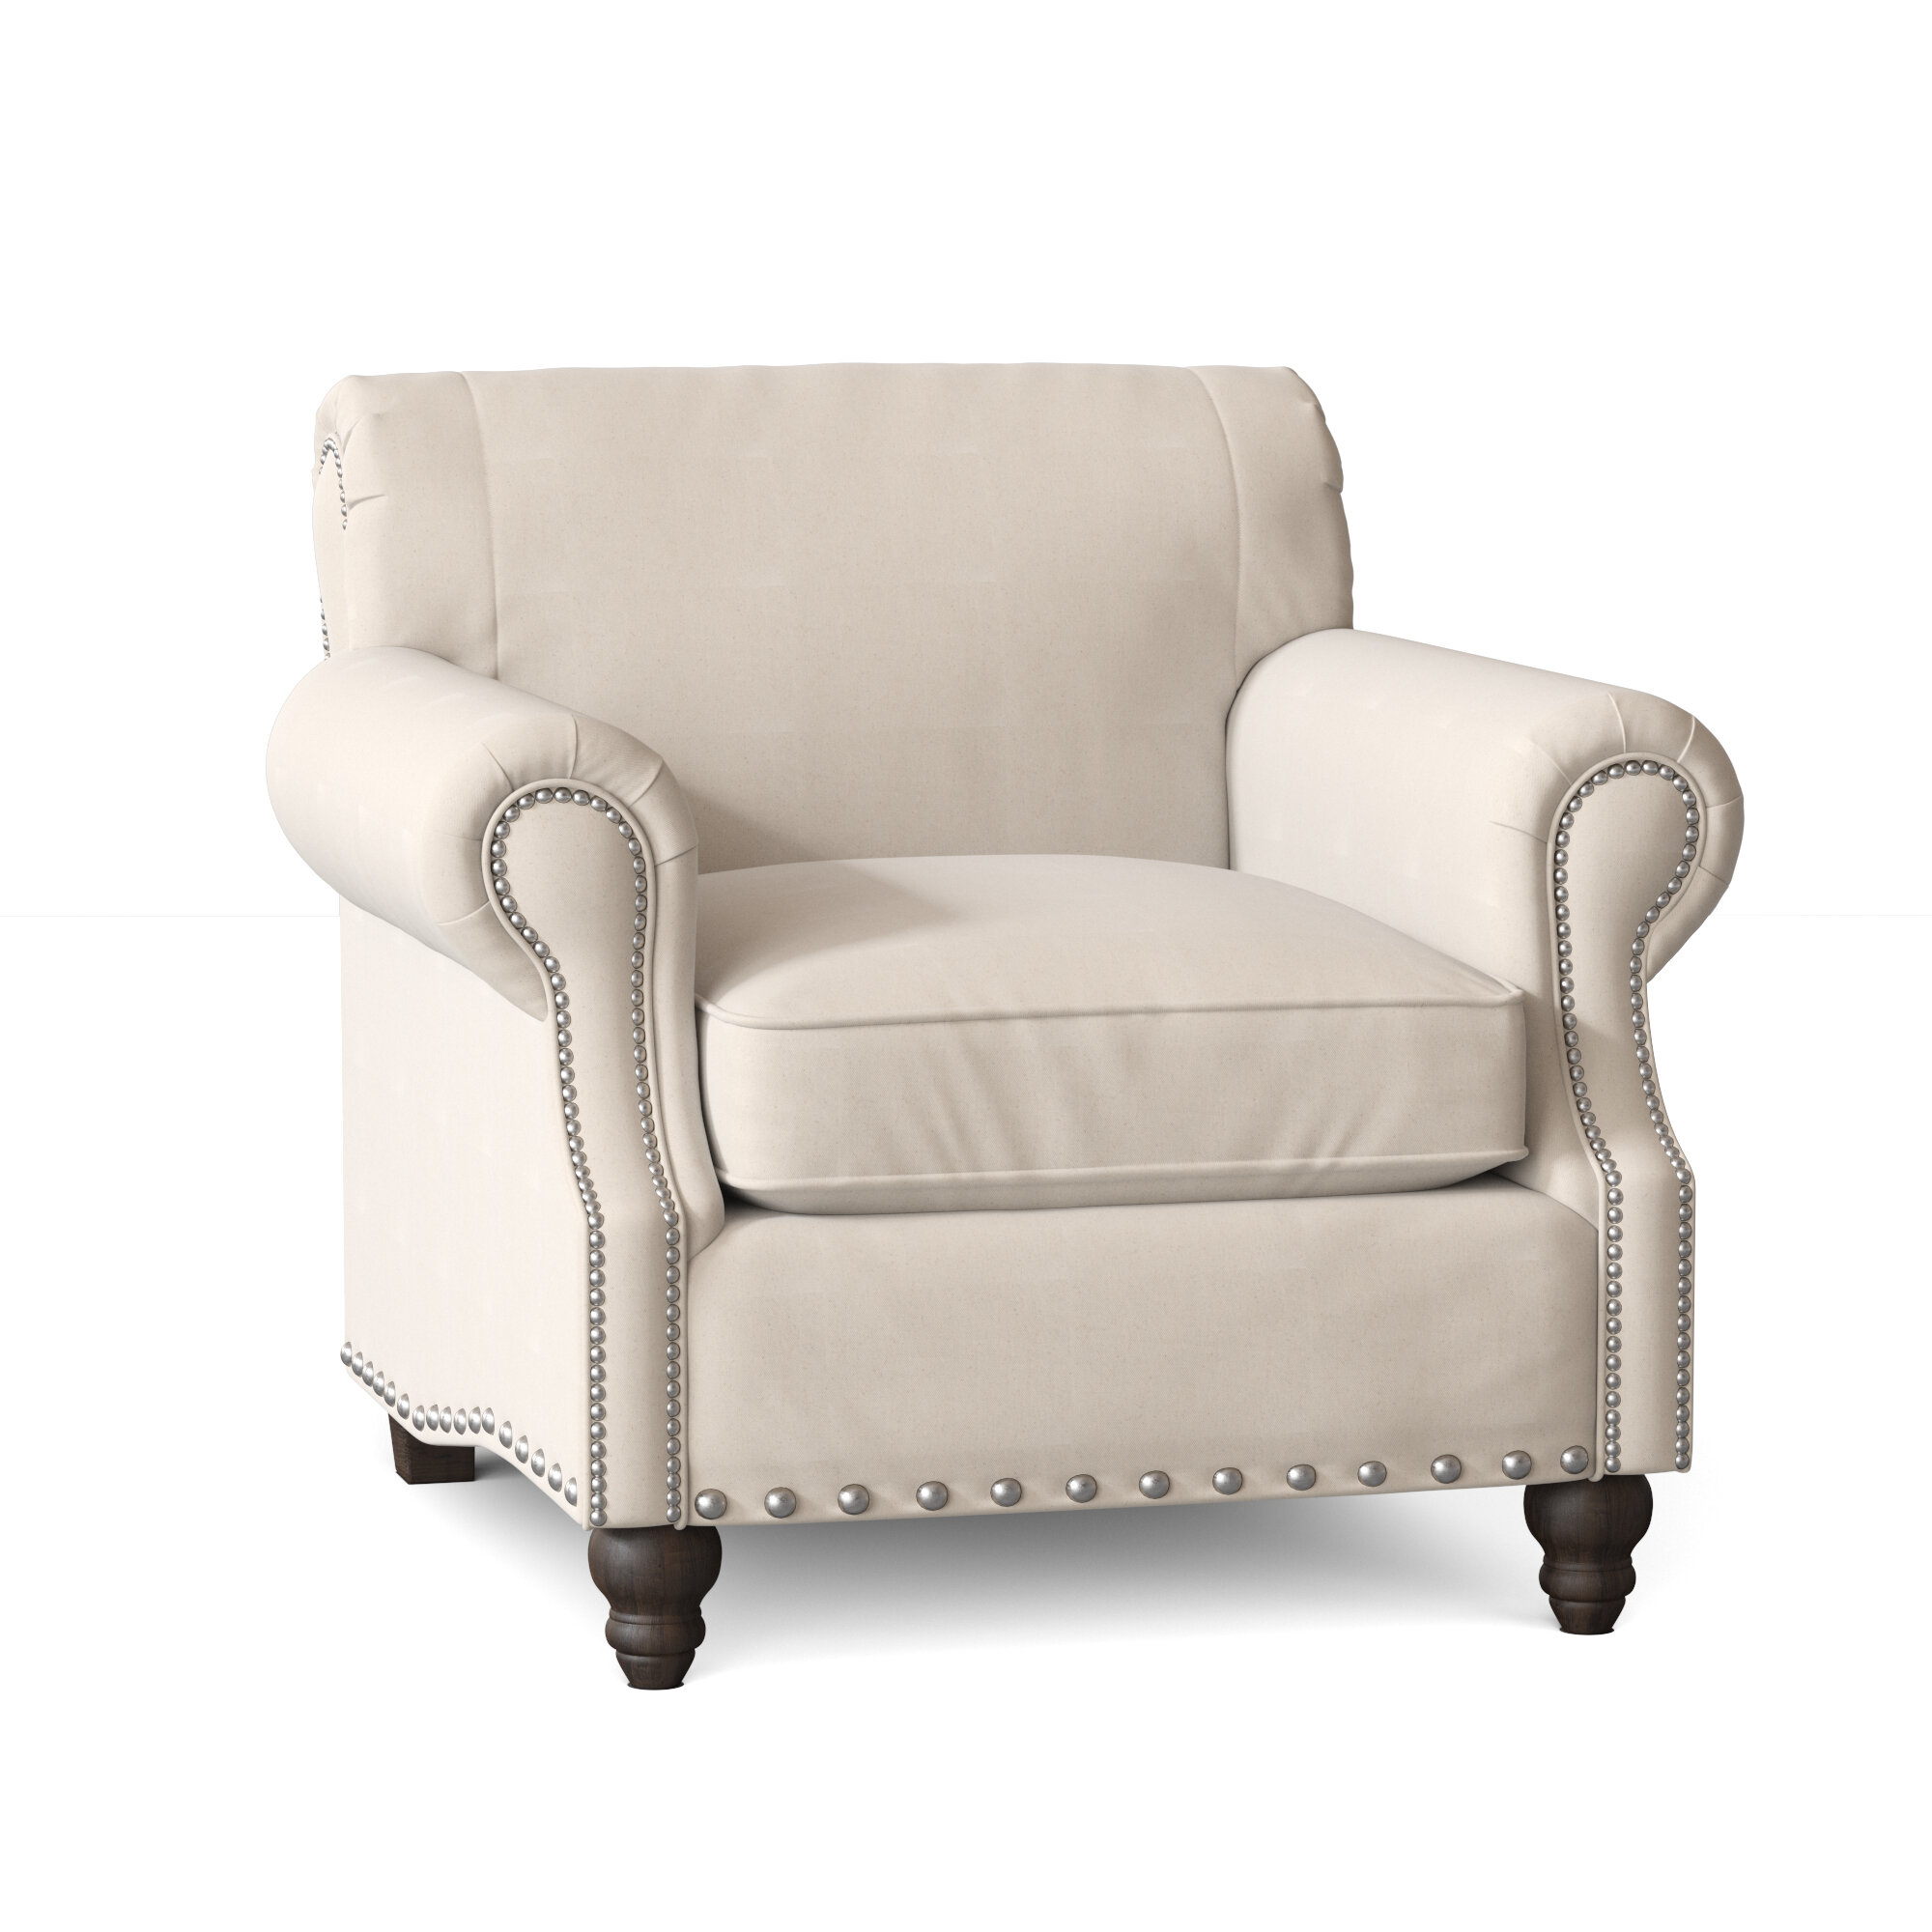 "Landry 40"" W Polyester Blend Down Cushion Armchair Intended For Polyester Blend Armchairs (View 6 of 15)"